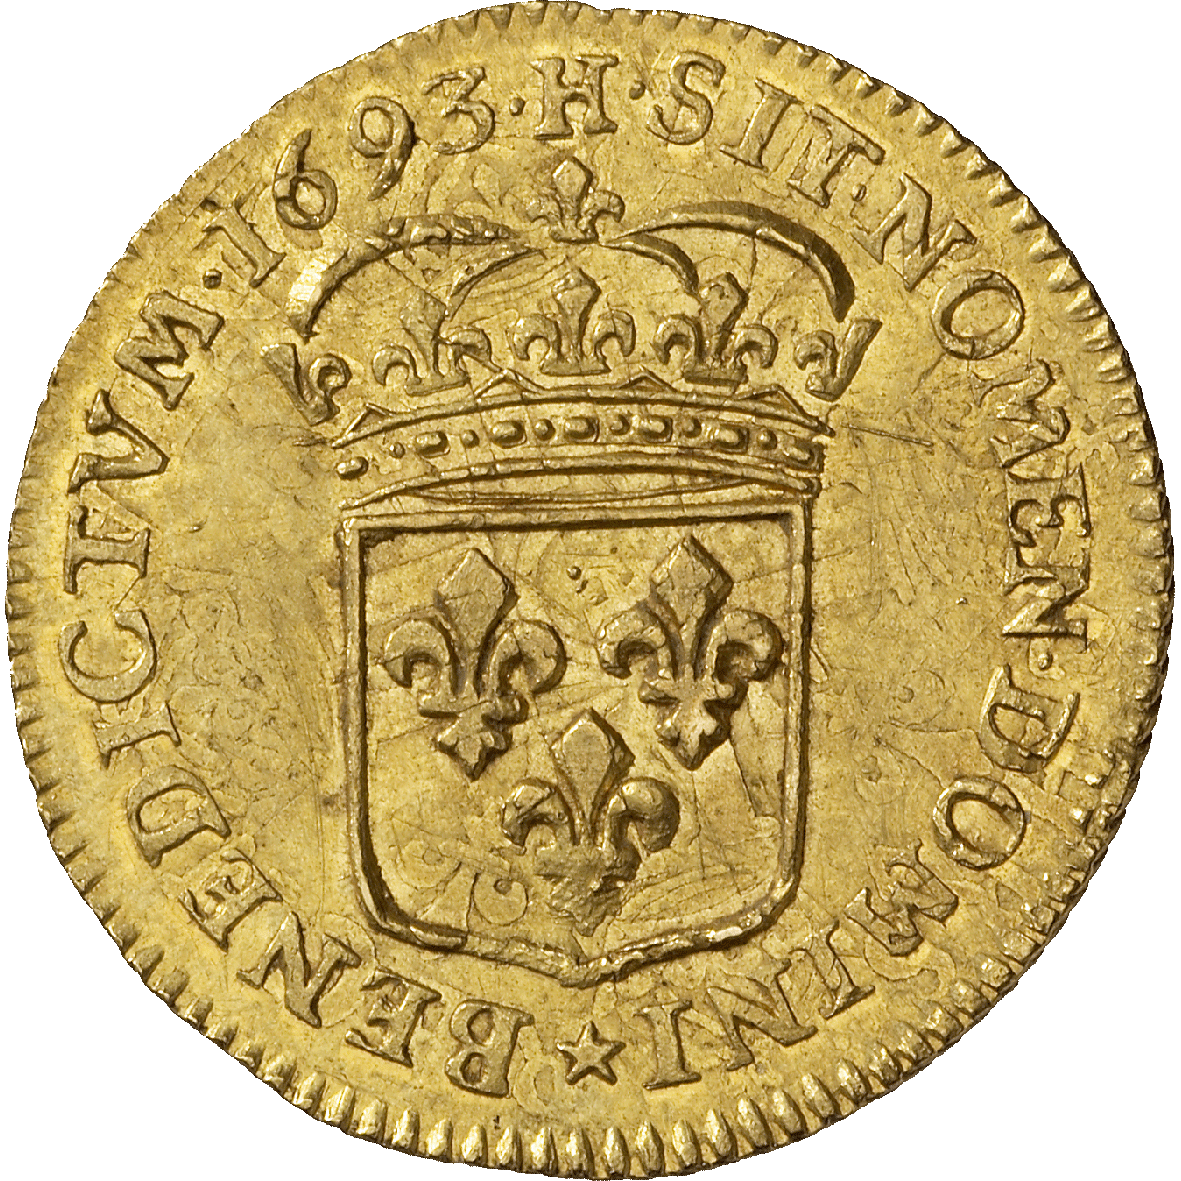 Kingdom of France, Louis XIV, Louis d'or 1693 (reverse)